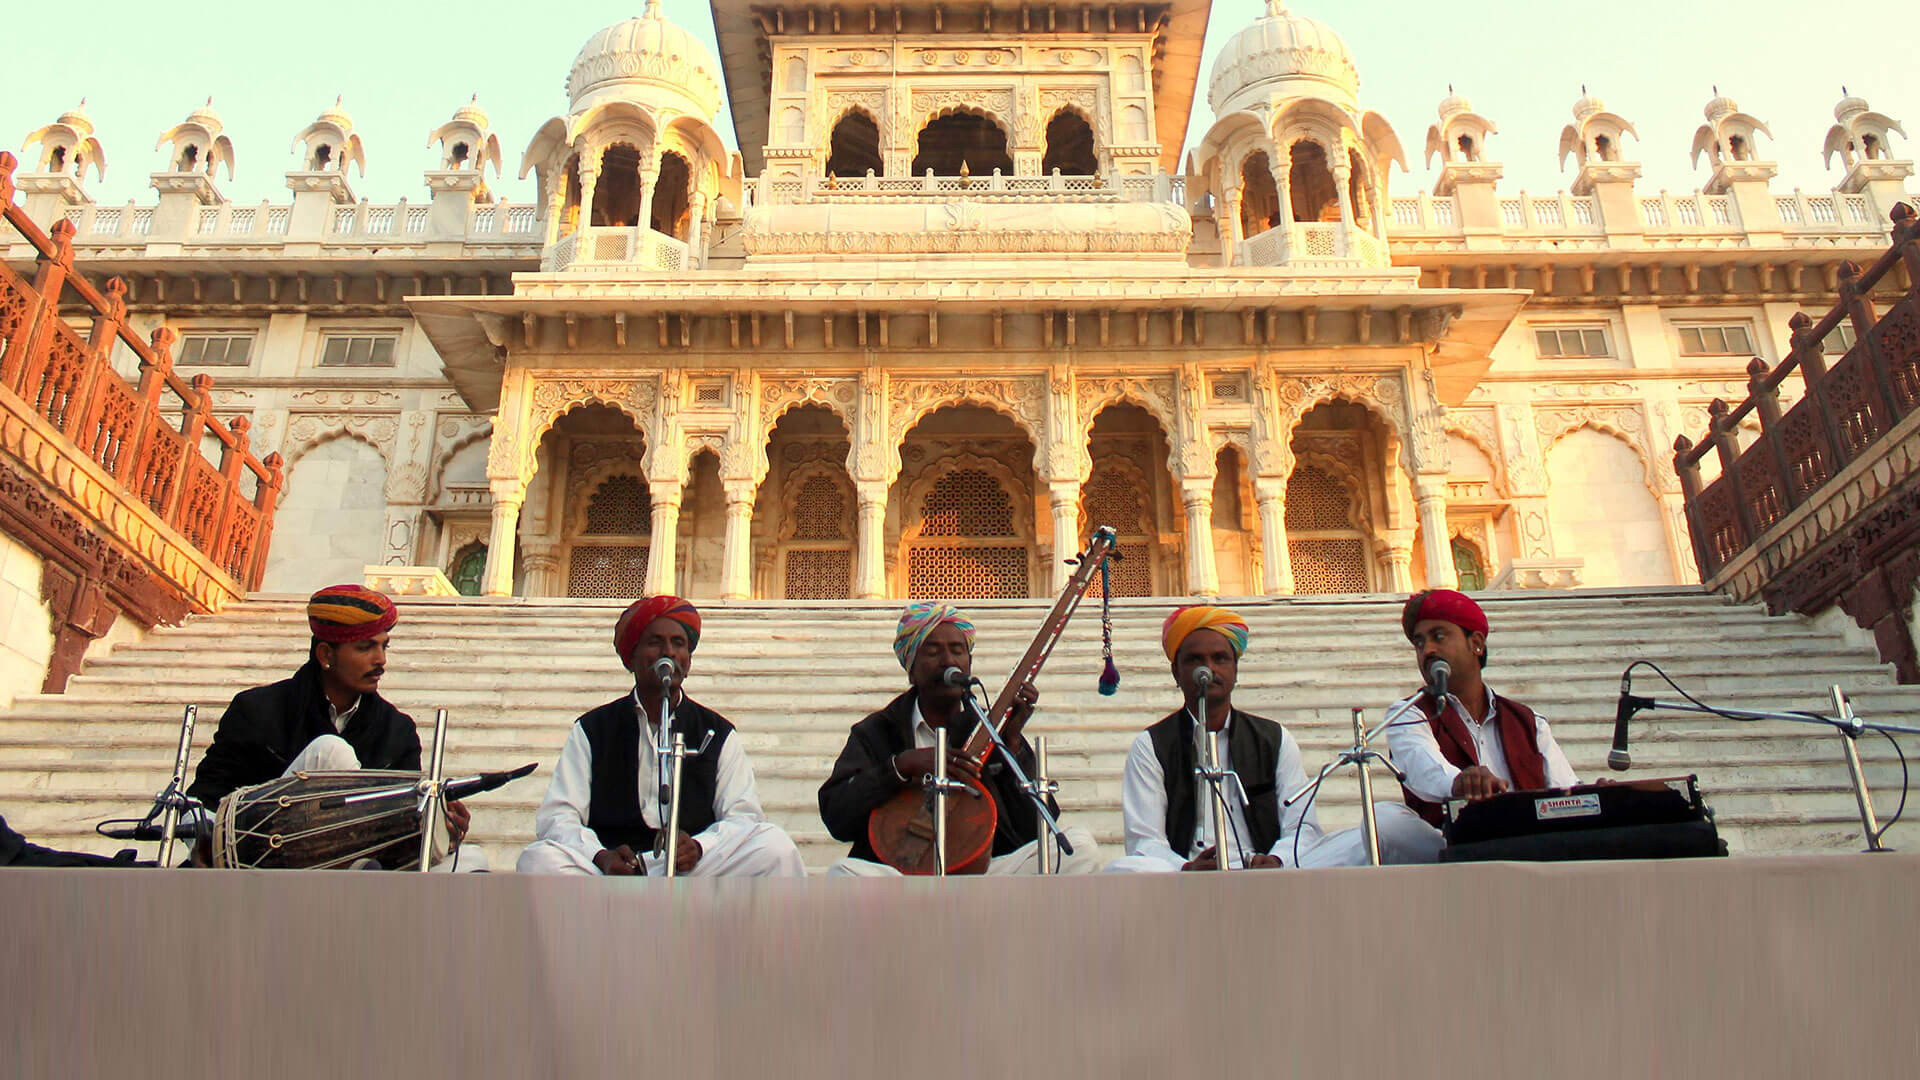 Sufi_Festival_Attractions